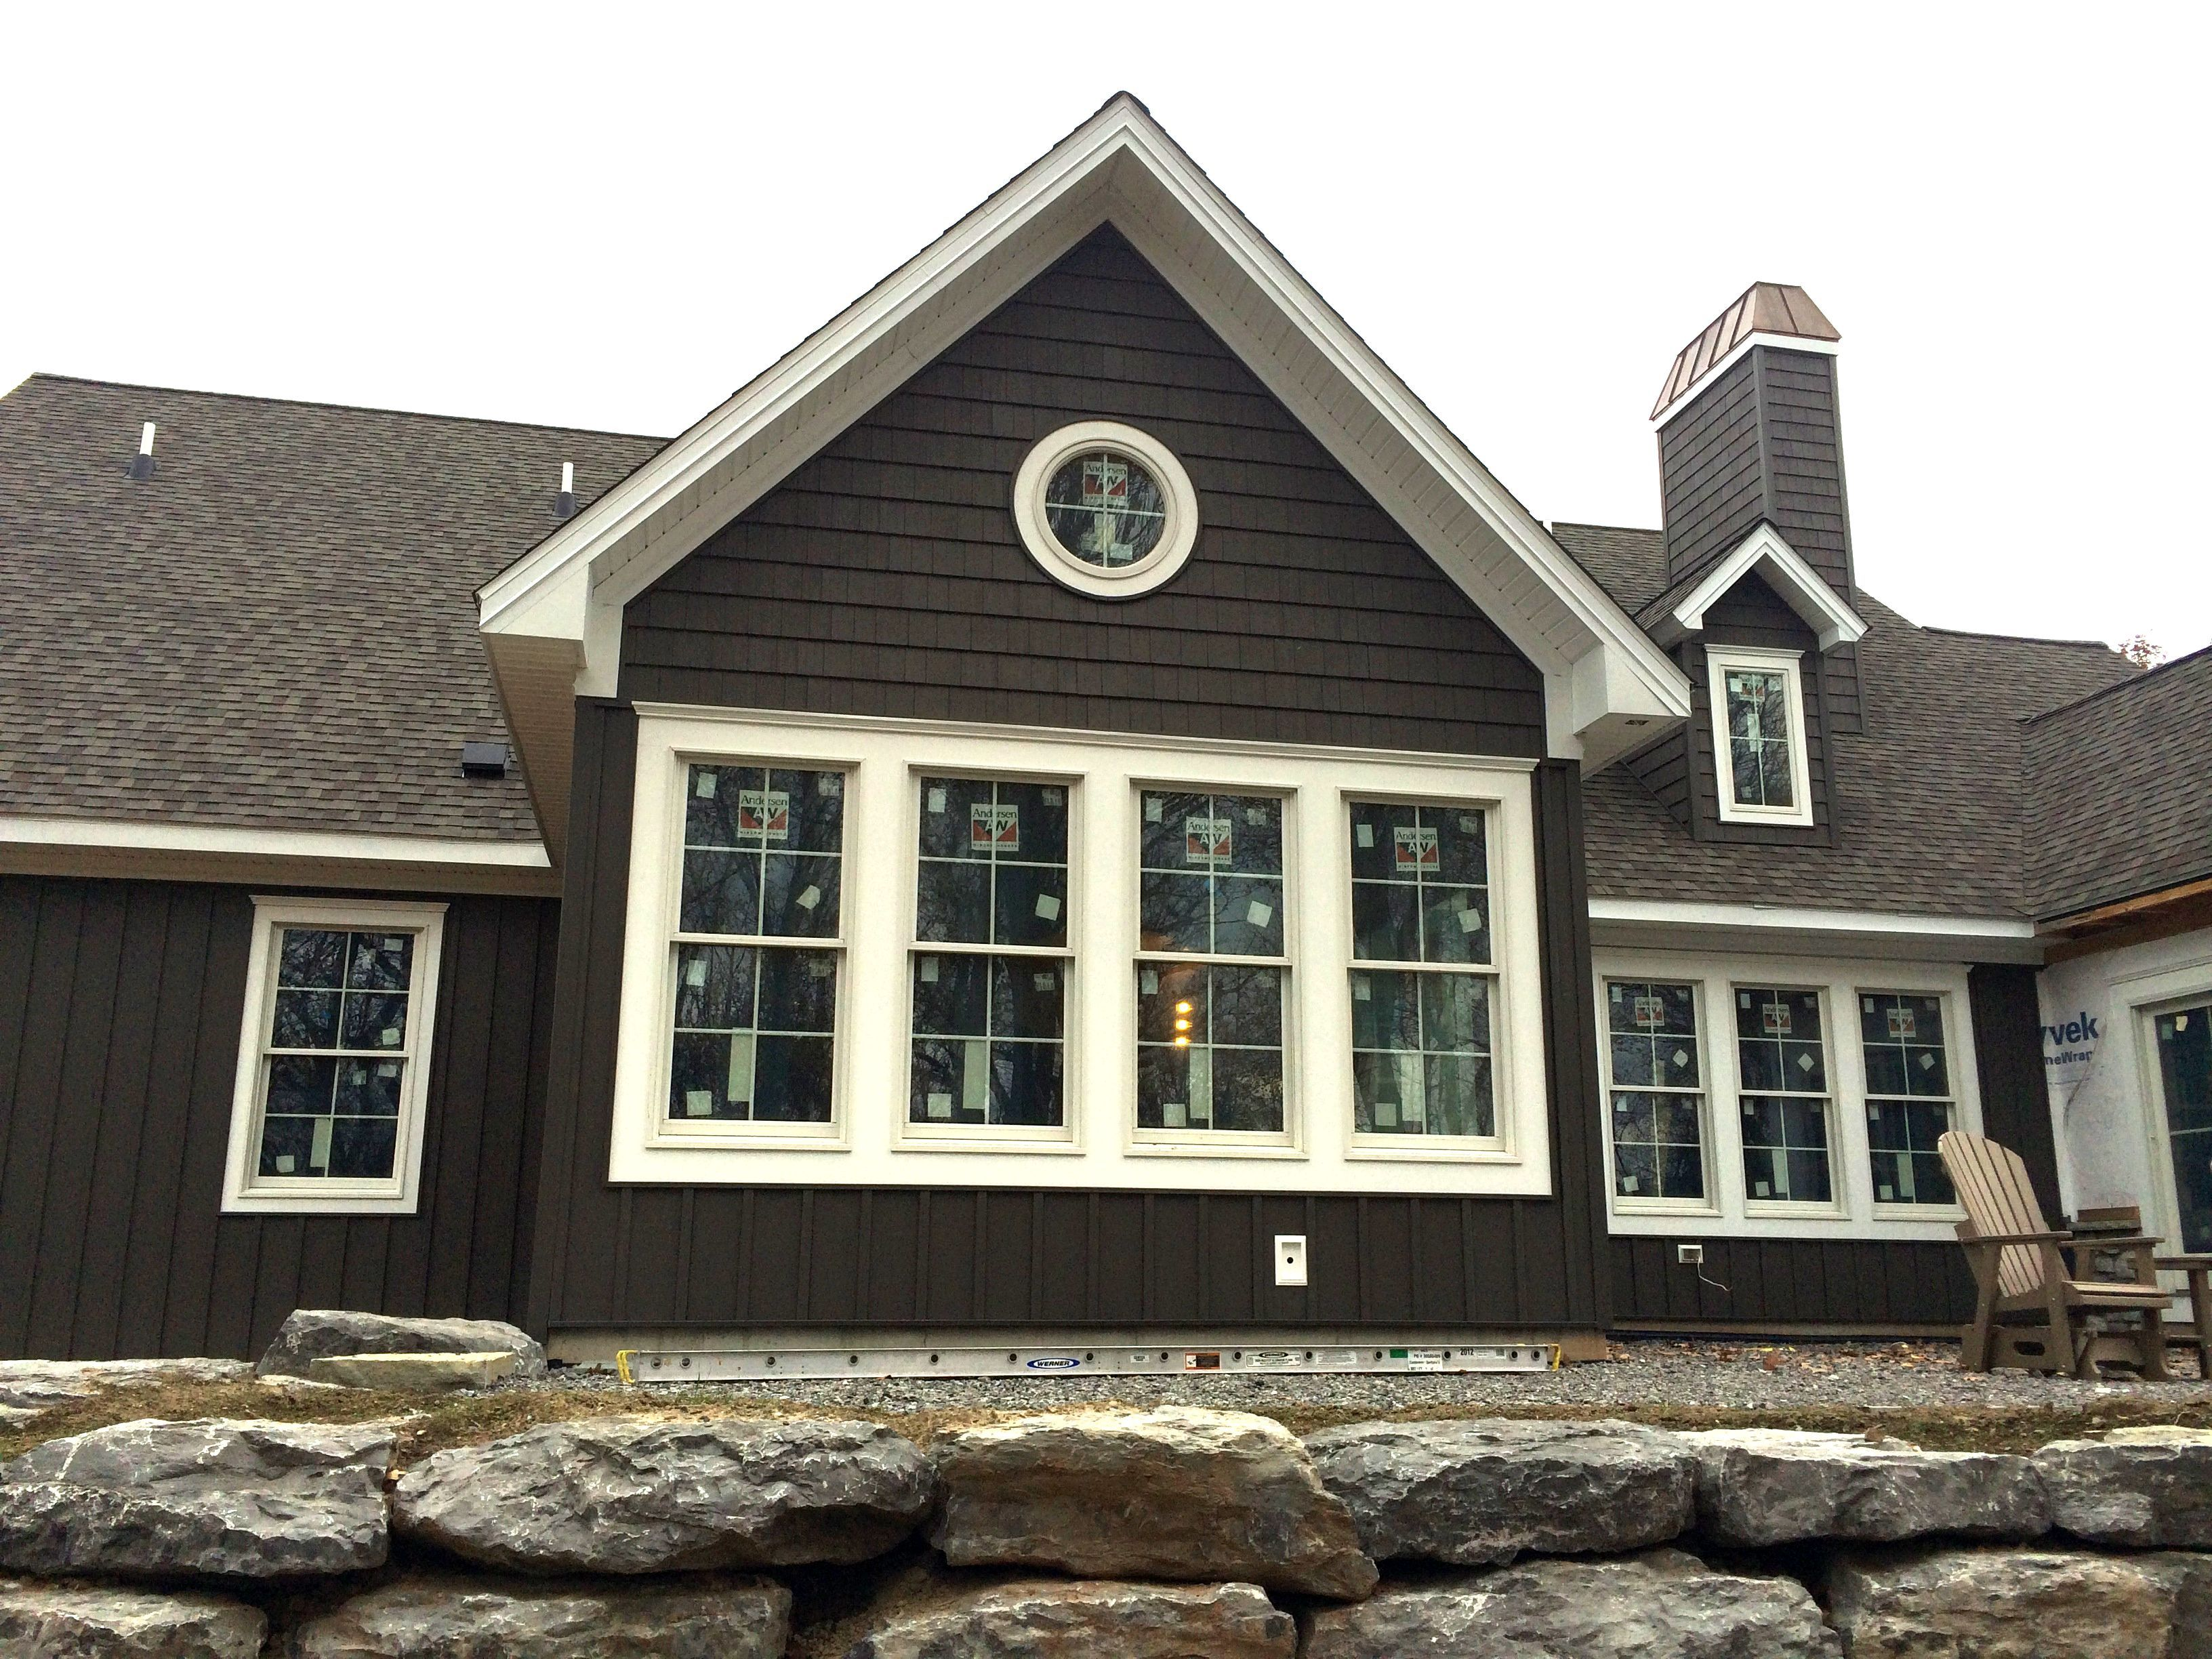 Craneboard siding in graphite nov 2014 addition in - Exterior house paint colors 2014 ...